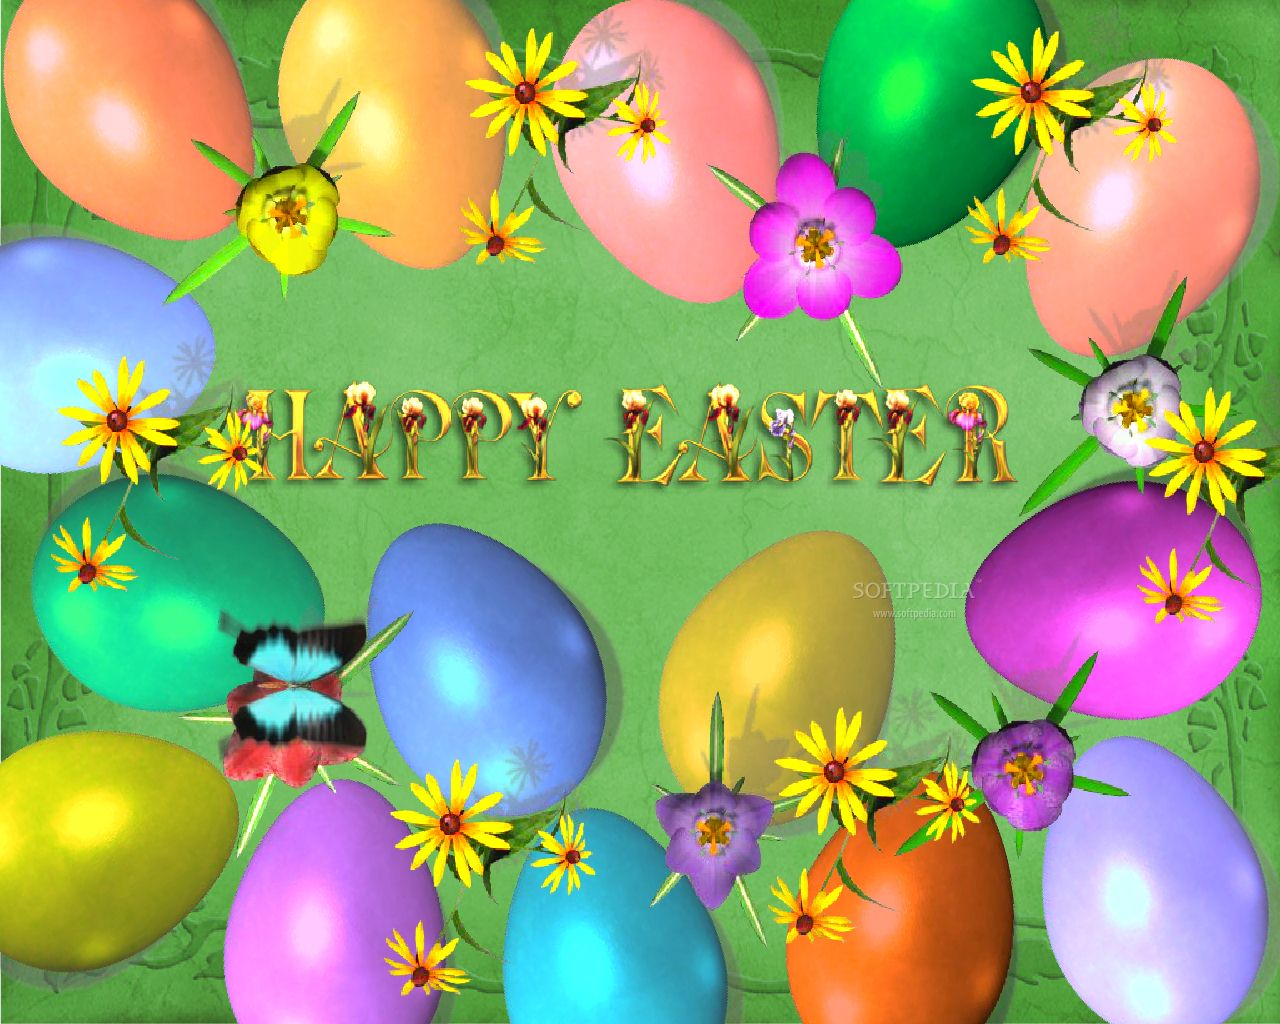 Image gallary 5 Beautiful Happy Easter Wallpapers for Desktop 1280x1024